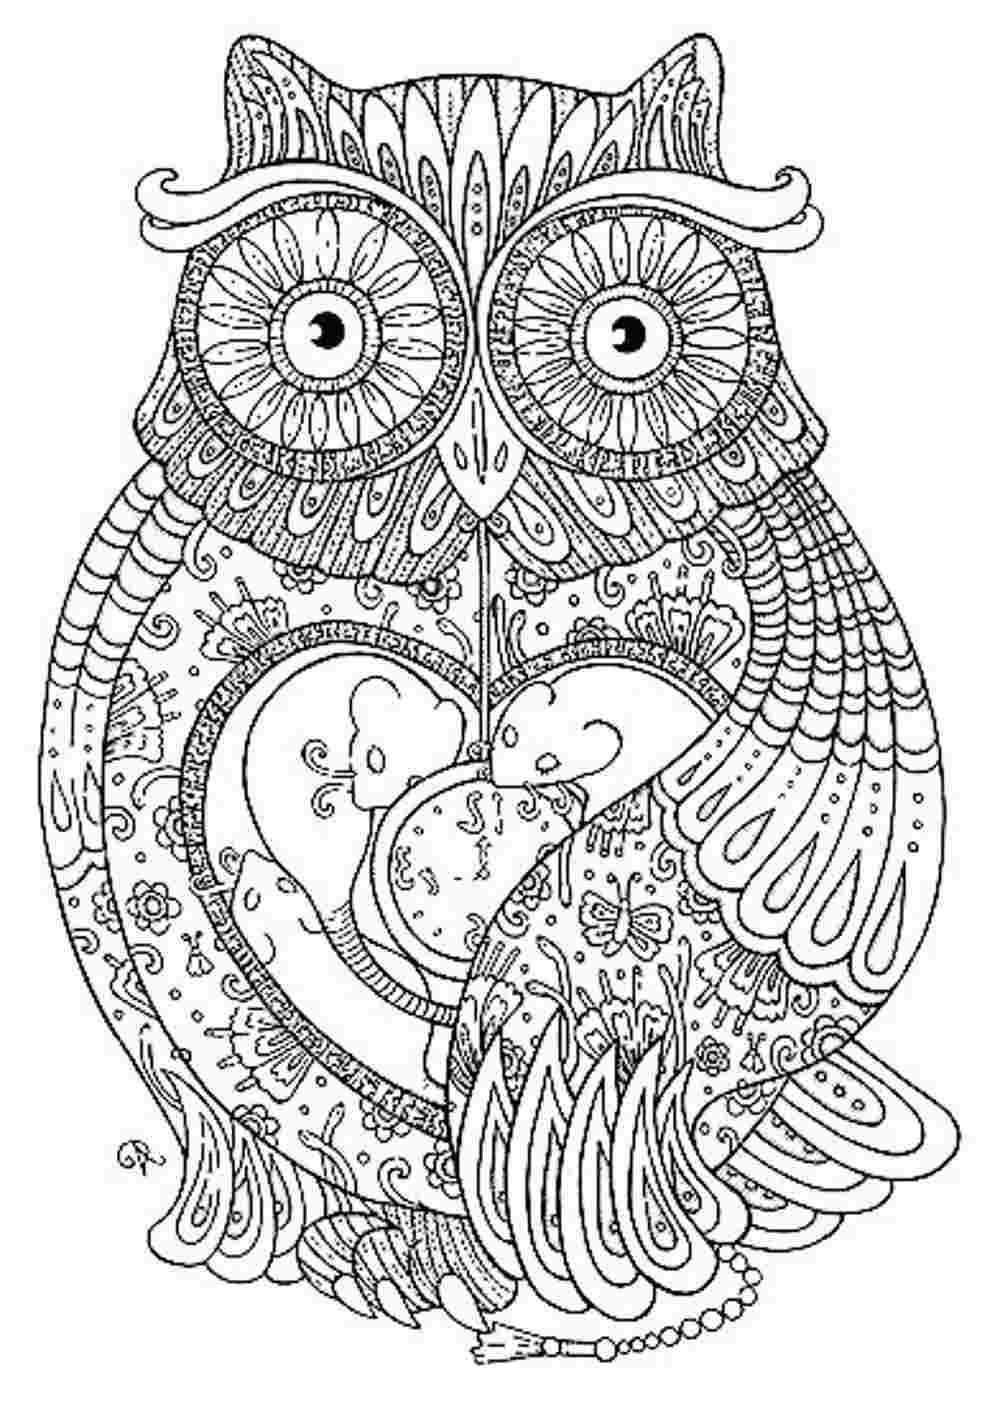 pattern animal coloring pages - Hard Animal Coloring Pages